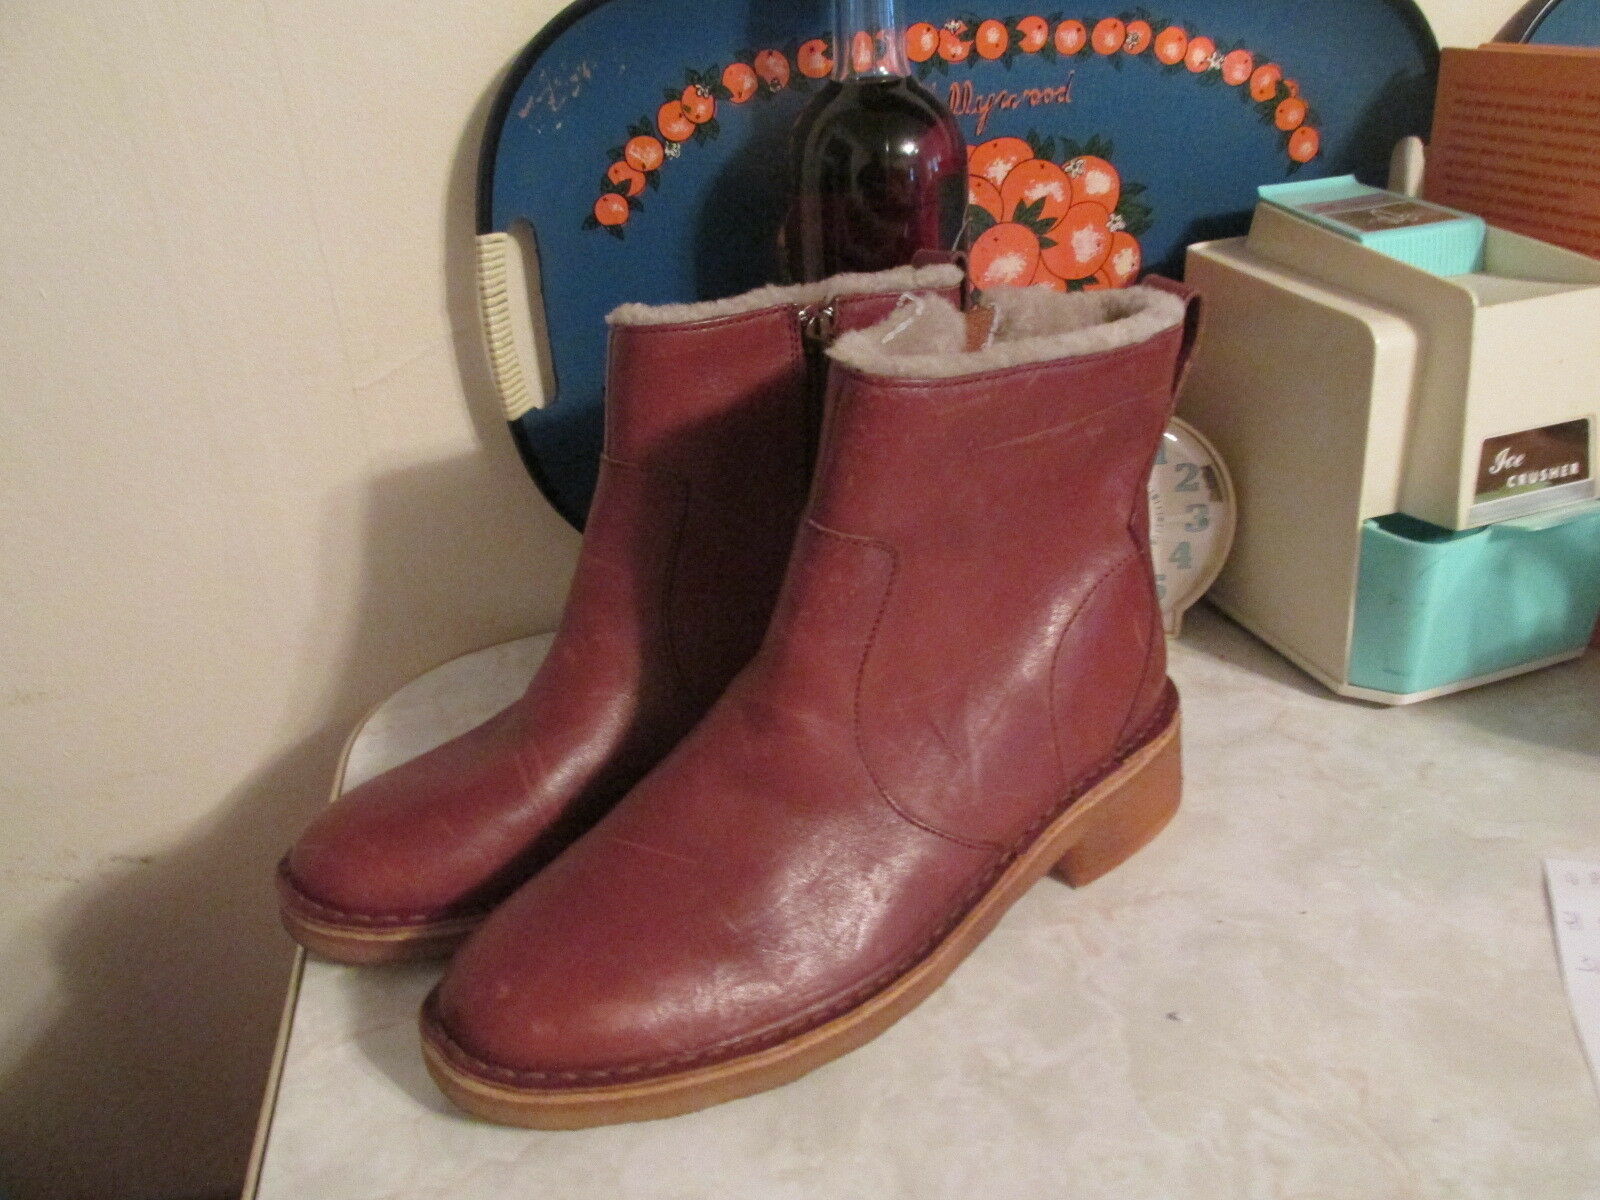 CLARKS MARU MAY COGNAC LEATHER CREPE SOLE WOOL LINED BOOTS WOMEN'S US 9